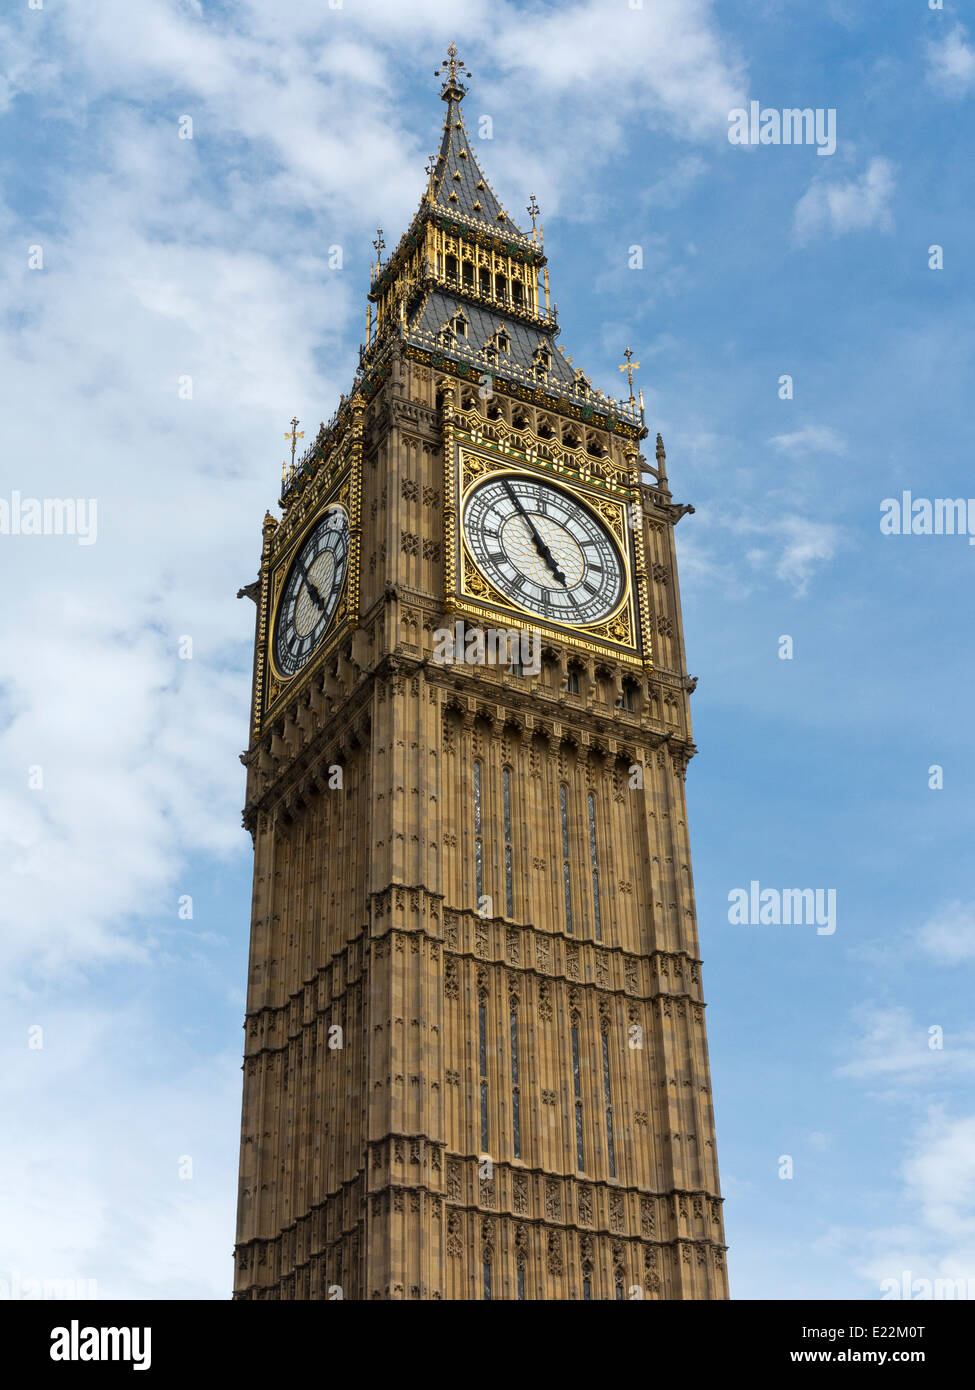 Upper section of Big Ben at the Palace of Westminster London England with the dial showing 4.55pm Stock Photo